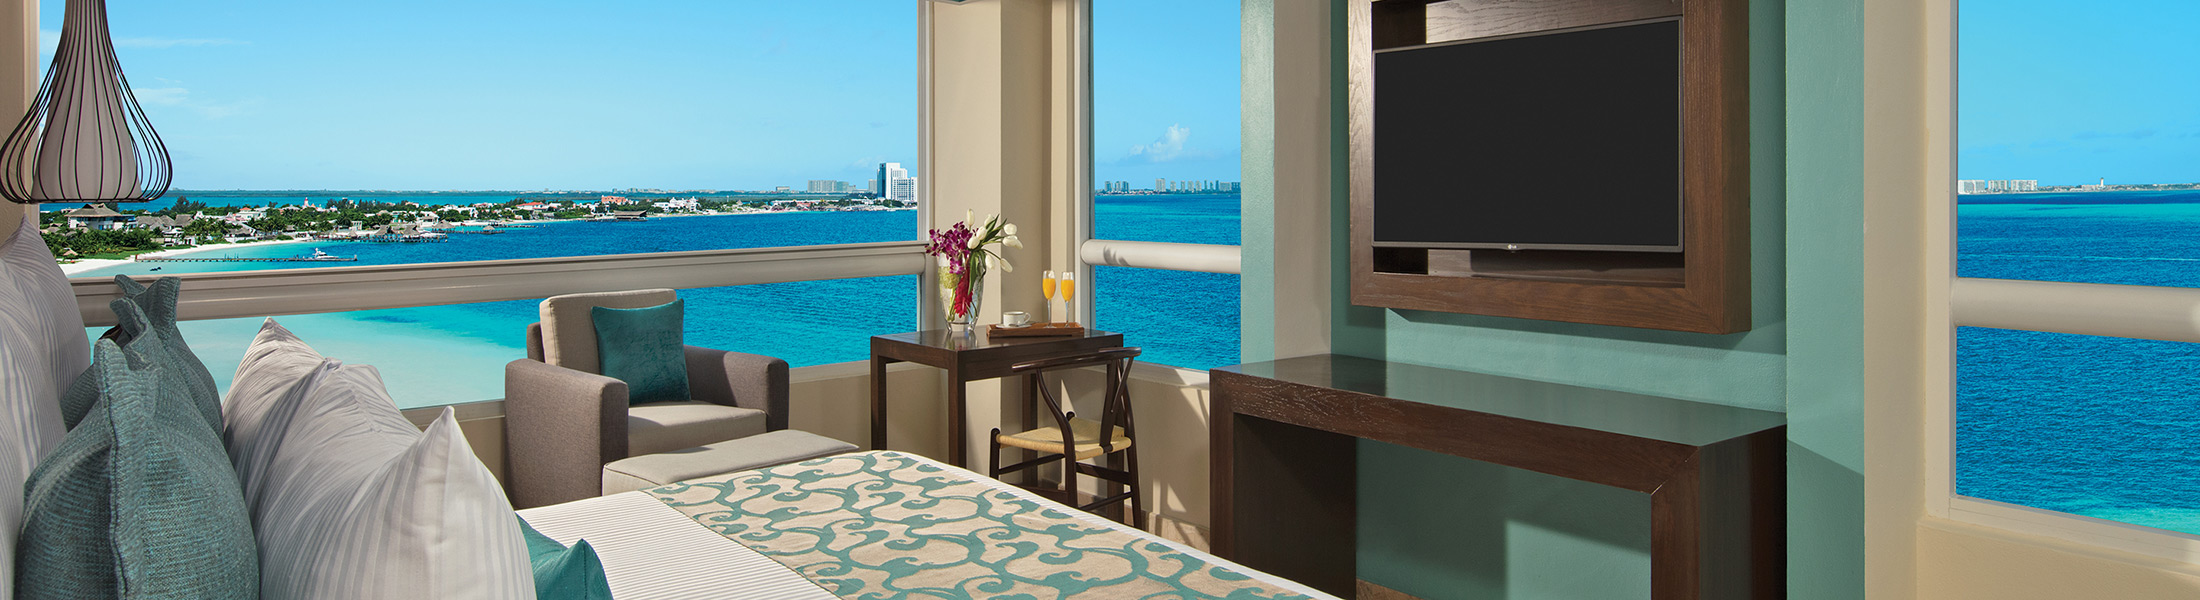 Bedroom with ocean views at Dreams Sands Cancun Resort & Spa